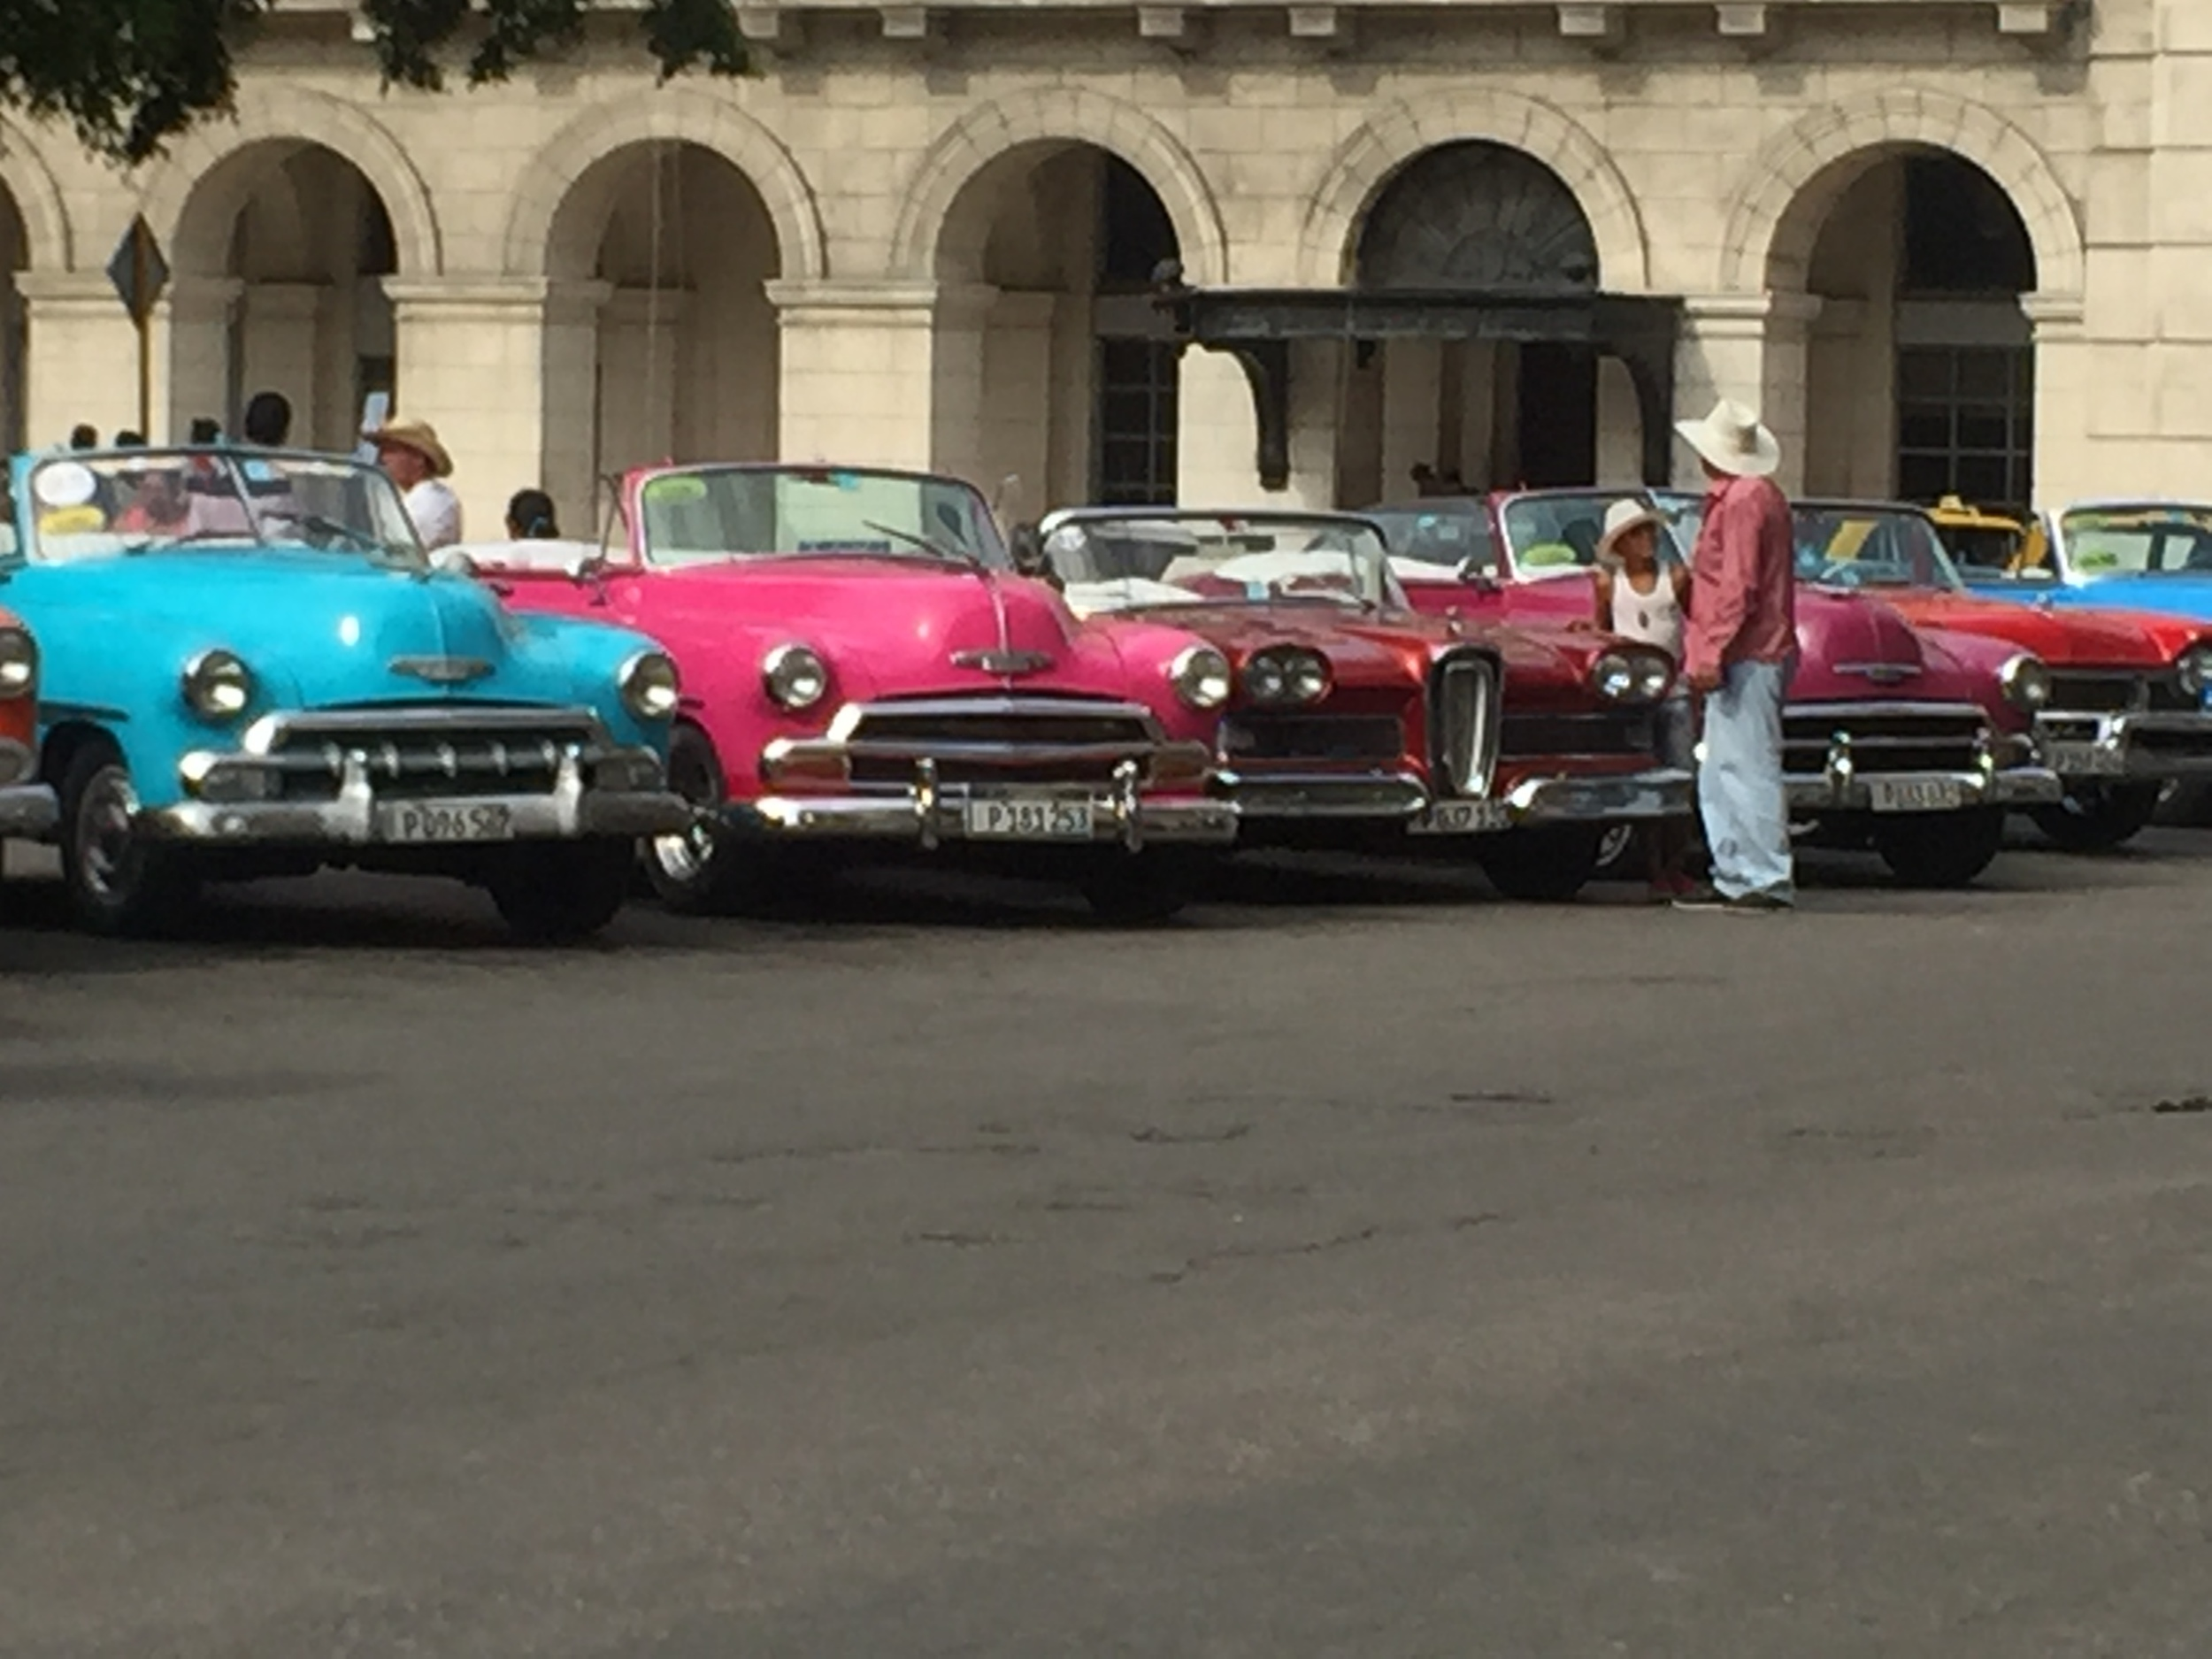 Classic cars taxis line up ready for tourists. For $30 you'll get an hour long tour through Havana.